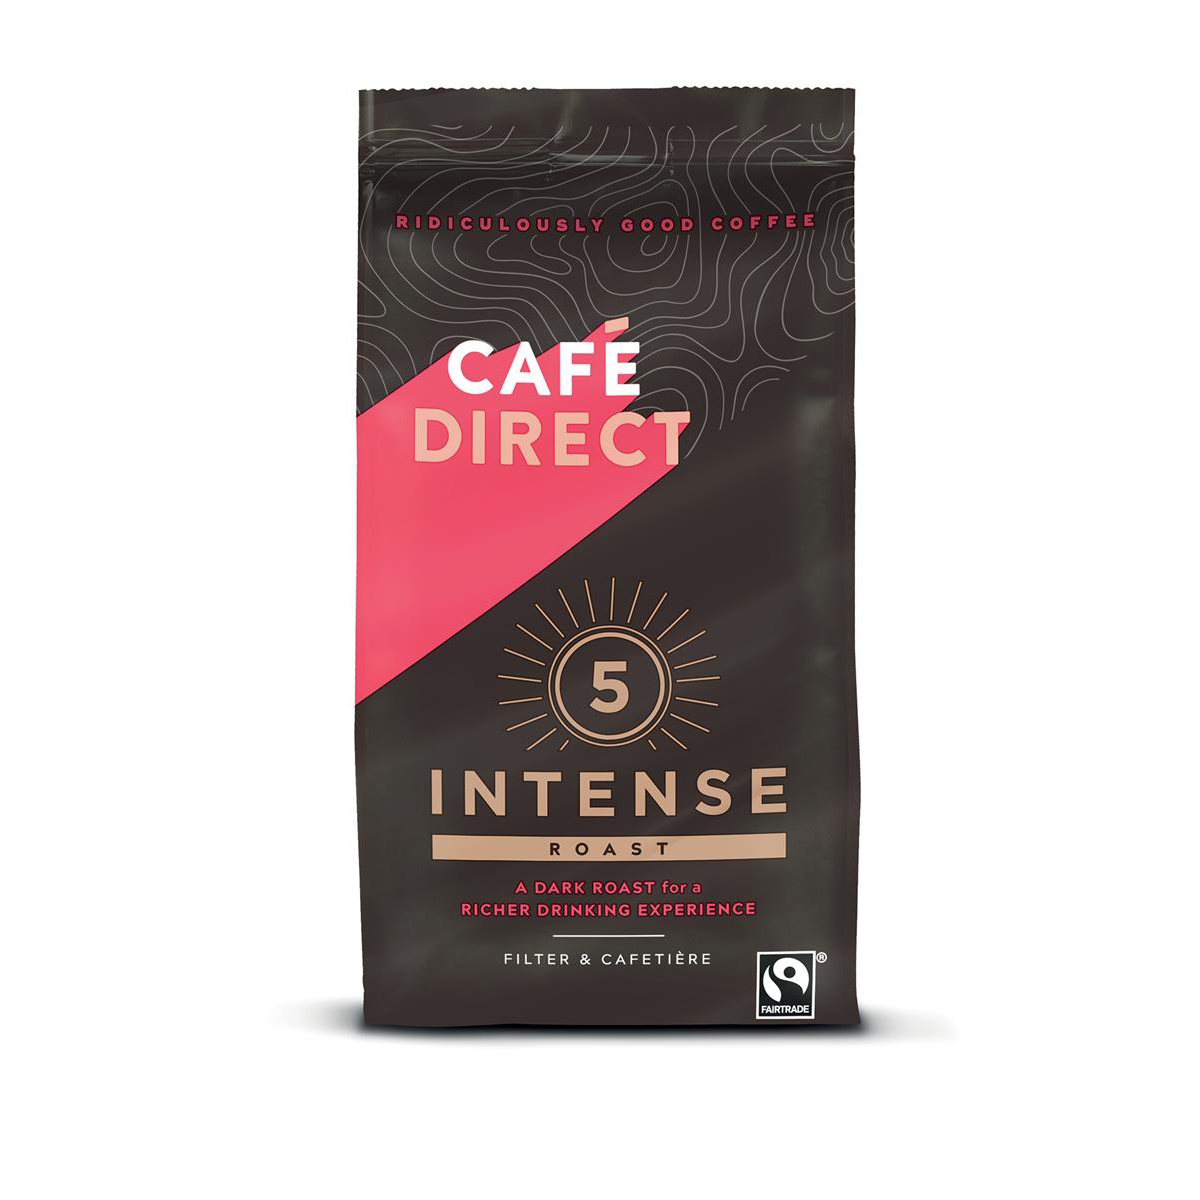 Coffee Cafe Direct Intense Roast Fairtrade Roast and Ground Coffee 227g Ref FCR0003